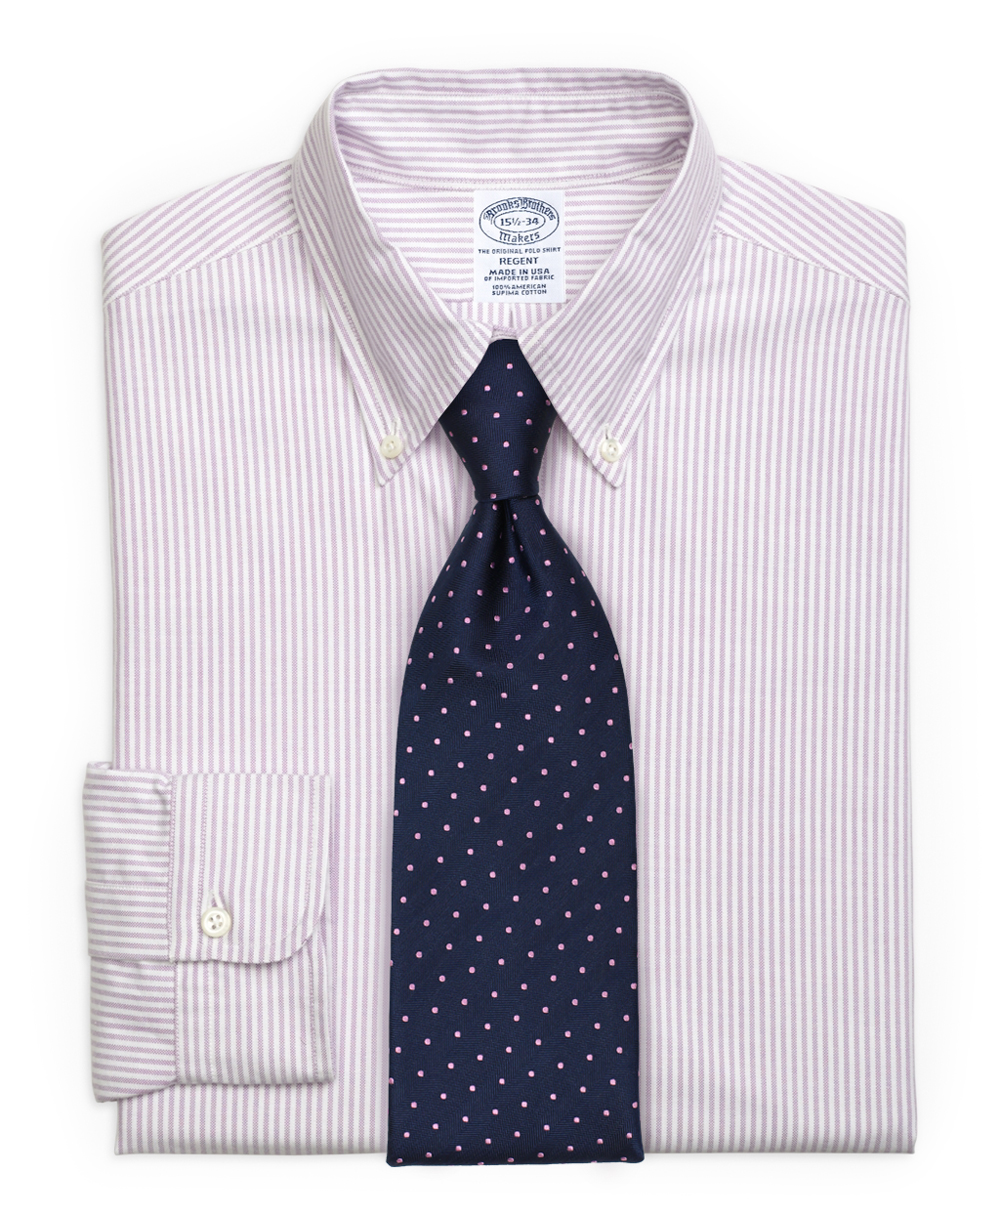 Striped Shirt and Polka Dot Tie